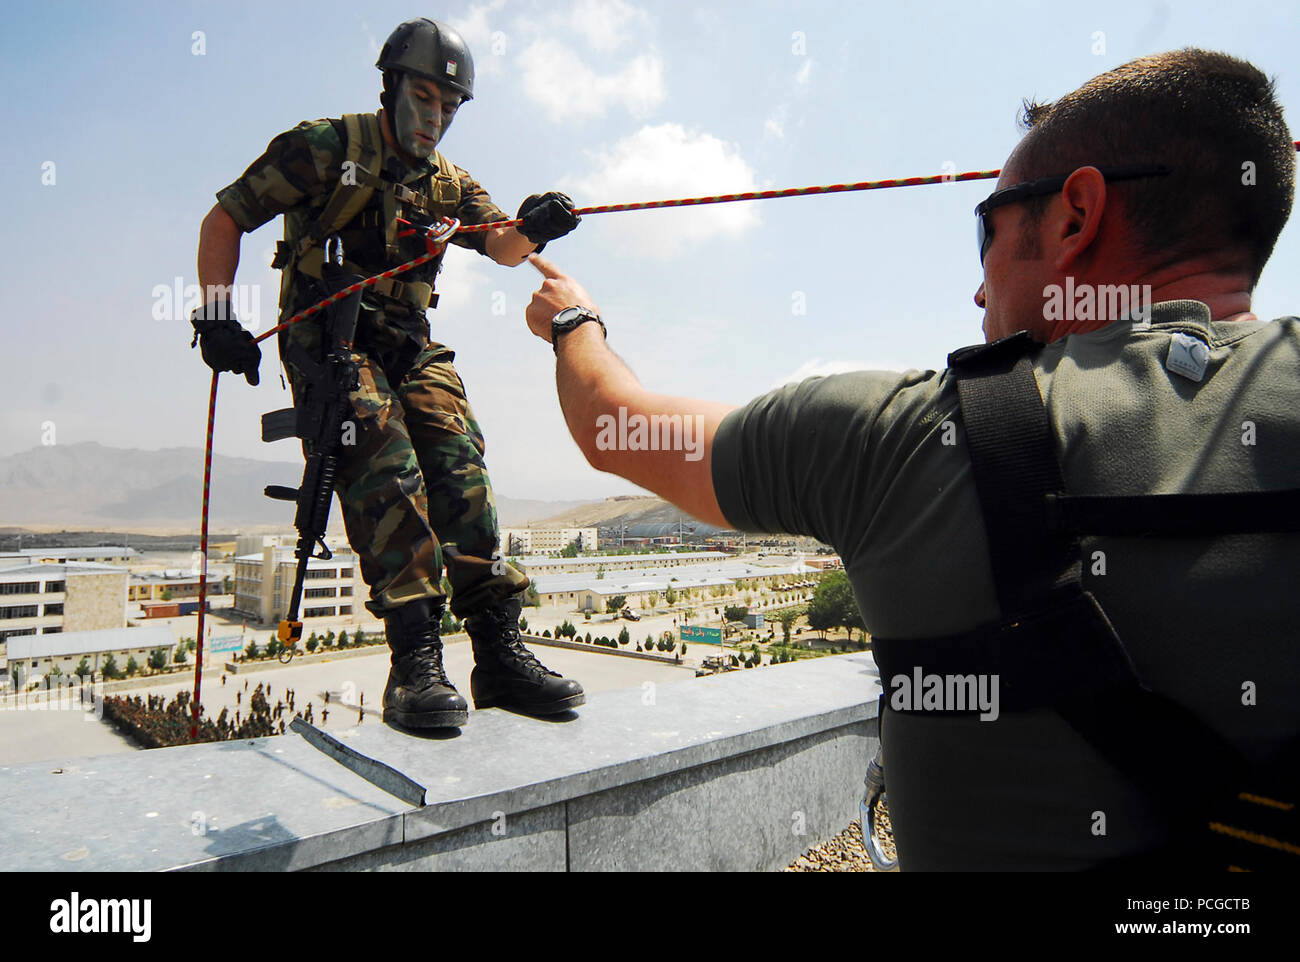 "KABUL, Afghanistan (August 9, 2010)  French Army Staff Sgt. Virion, right, an EPIDOTE program Afghan National Army (ANA) advisor, signals Afghan Captain Abdulhai, to begin a rappelling demonstration during a pre-Ramazan ceremony at Kabul Military Training Center (KMTC). ANA and visiting Coalition leaders watched security and quick response teams demonstrate their reactions to simulated insurgent attacks. Four ANA instructors at KMTC simulated a counterattack by firing blanks from the roof of a multi-story building, then rappelling down the side to aid in repelling the ""attackers."" (US Navy - Stock Image"